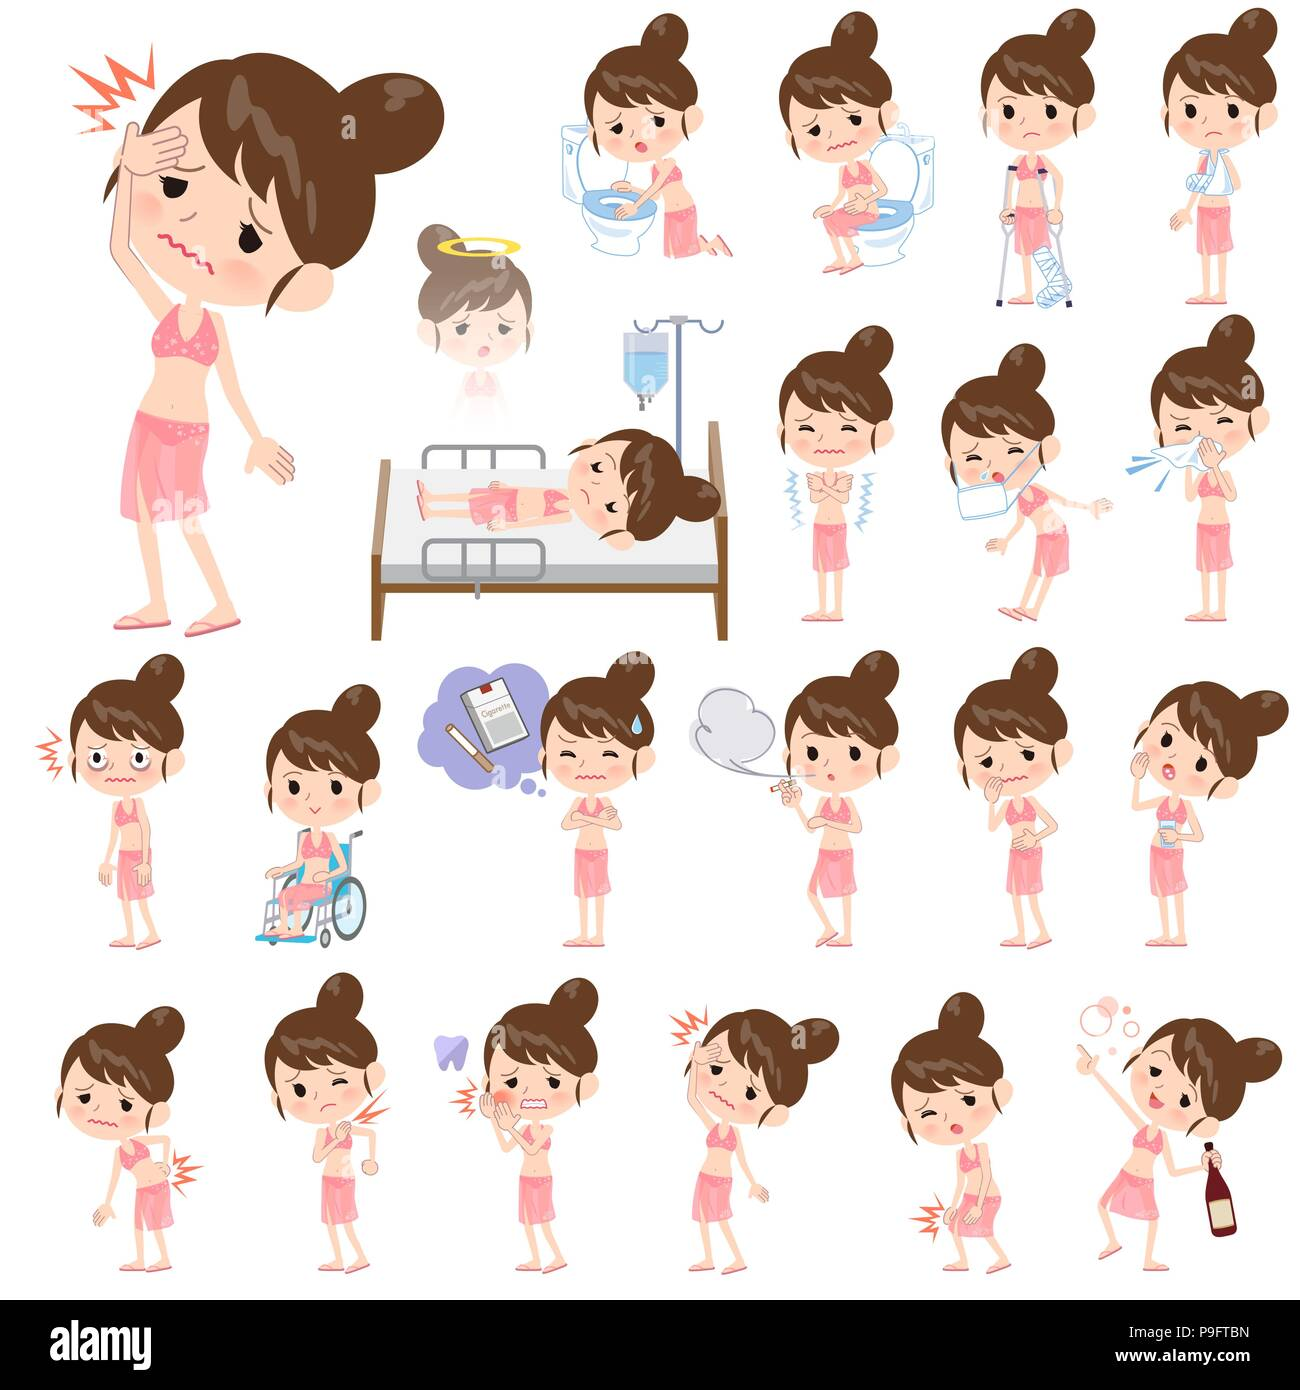 A set of swimwear style women with injury and illness.There are actions that express dependence and death.It's vector art so it's easy to edit. - Stock Vector